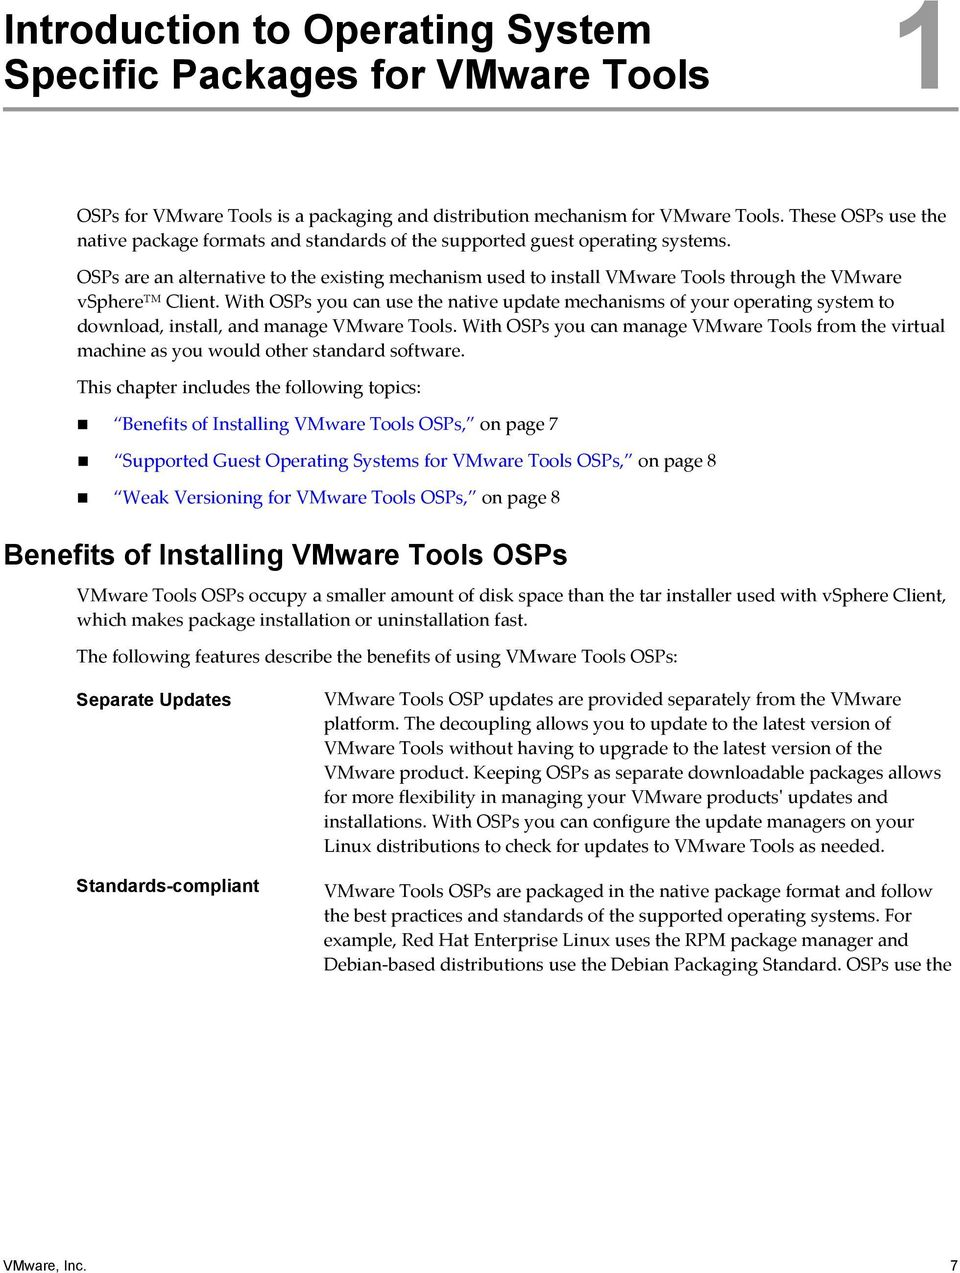 VMware Tools Installation Guide For Operating System